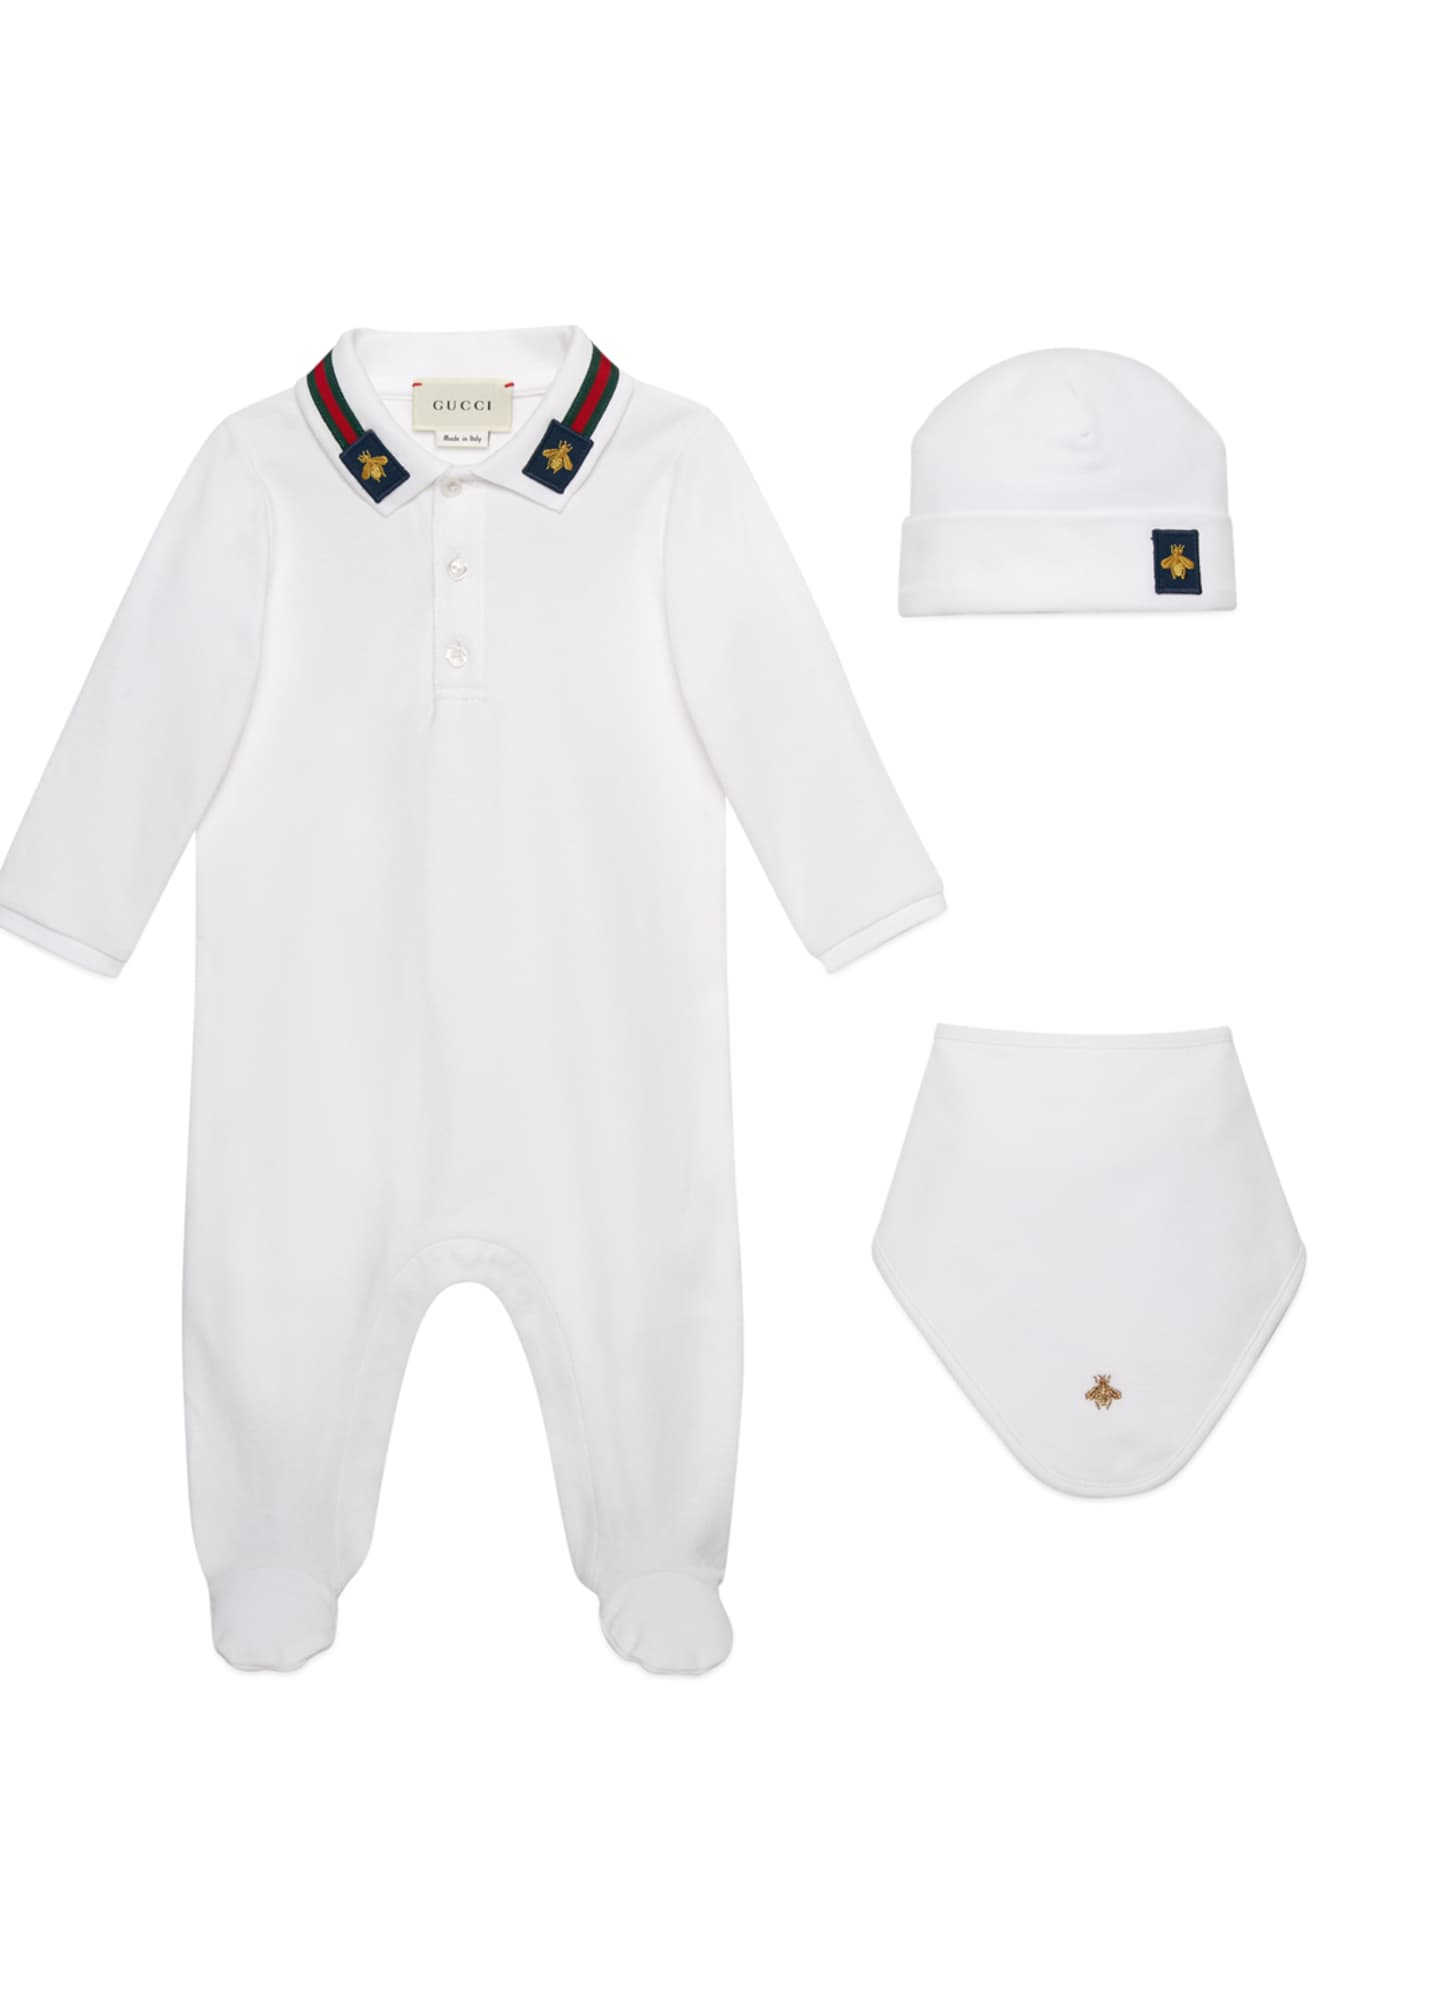 Gucci Embroidered Bee 3-Piece Layette Set, Size 0-9